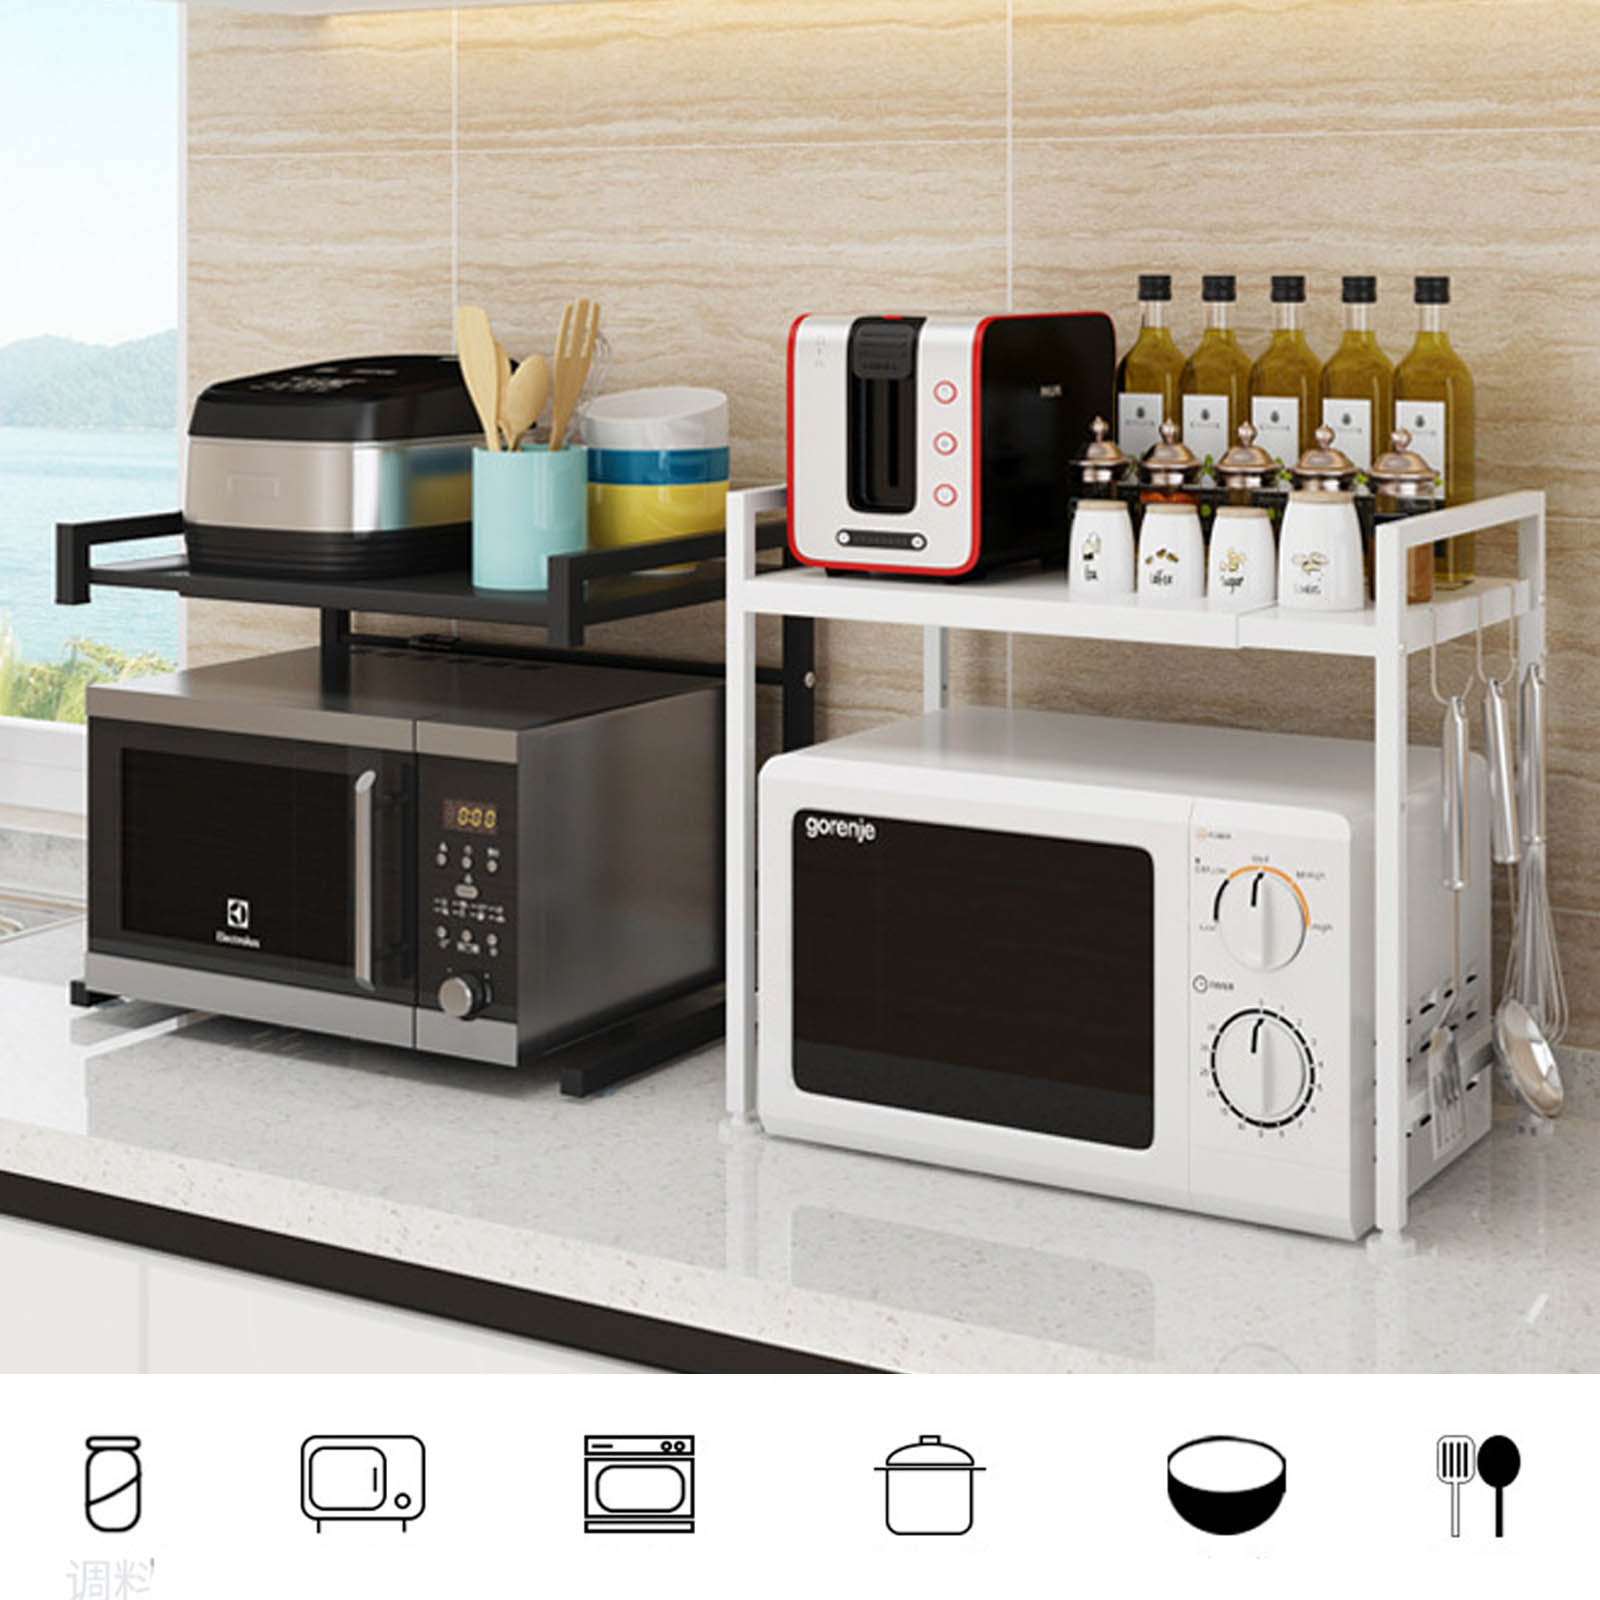 2 tier kitchen shelf microwave oven rack stand spice expandable storage cabinet black white ru uk au fast shipping